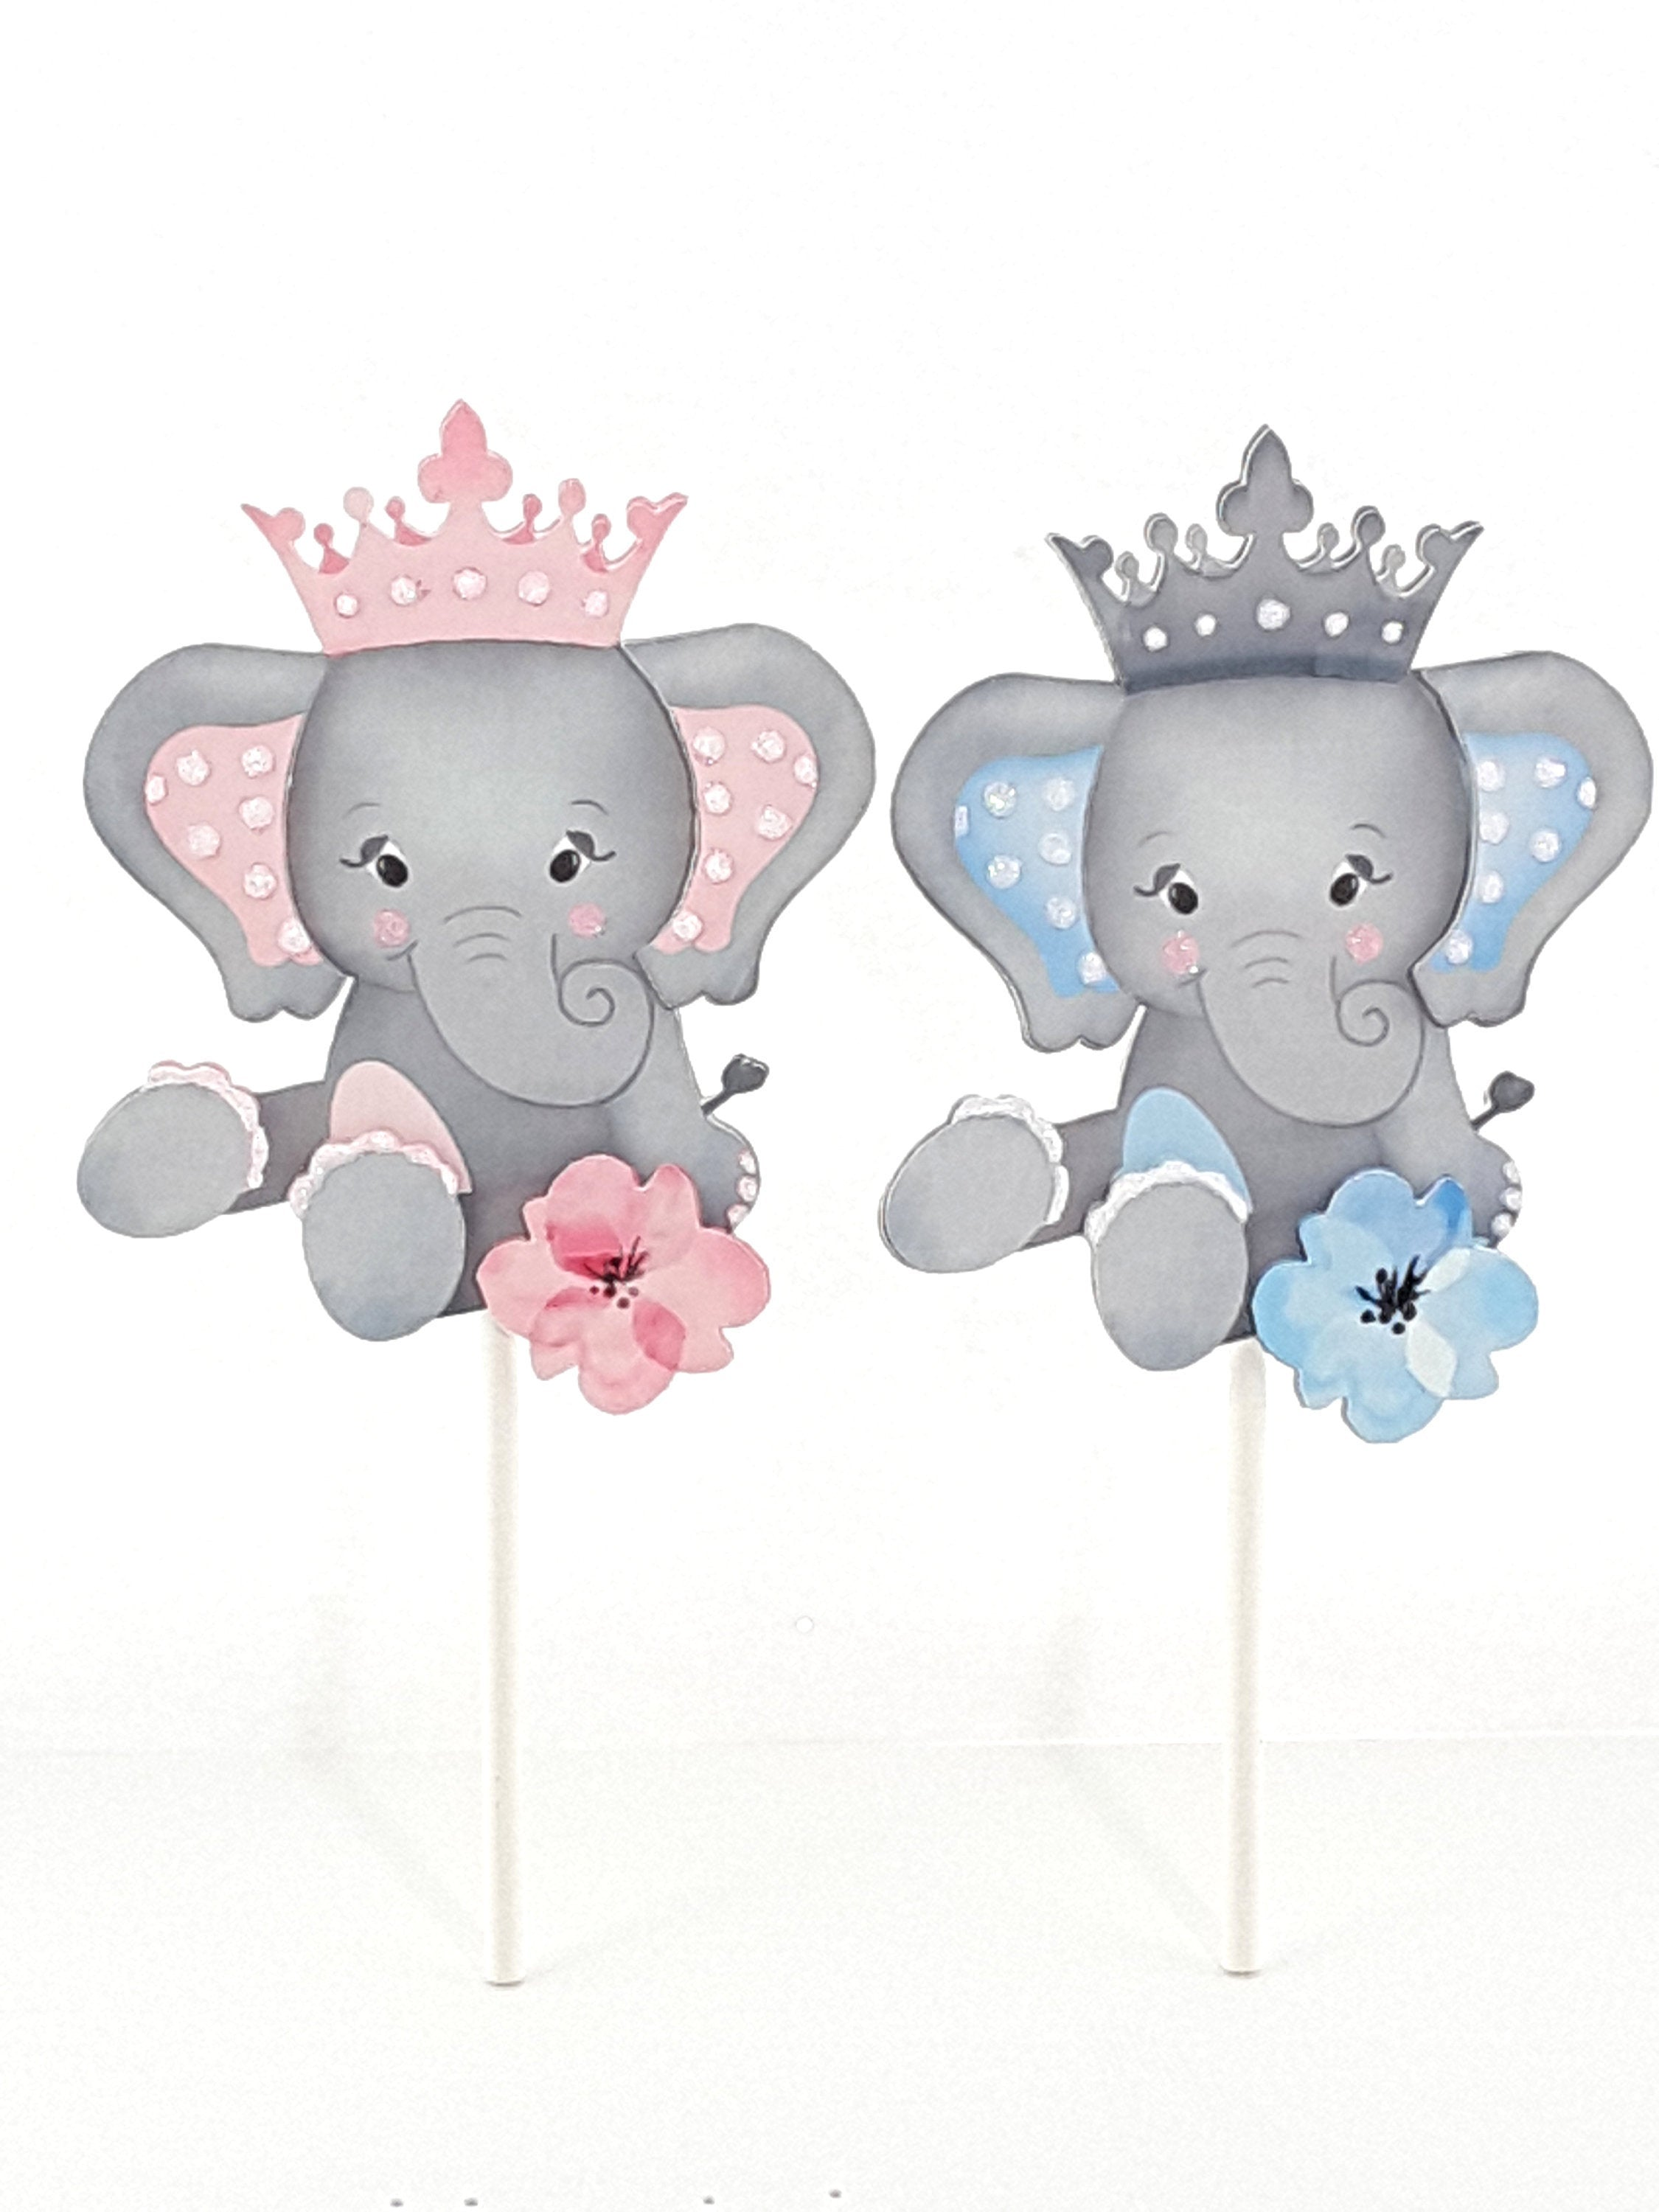 Adorable Personalized Elephant Cake Topper  Cake Decoration for Birthday or Baby Shower - TheLastWordBish.com